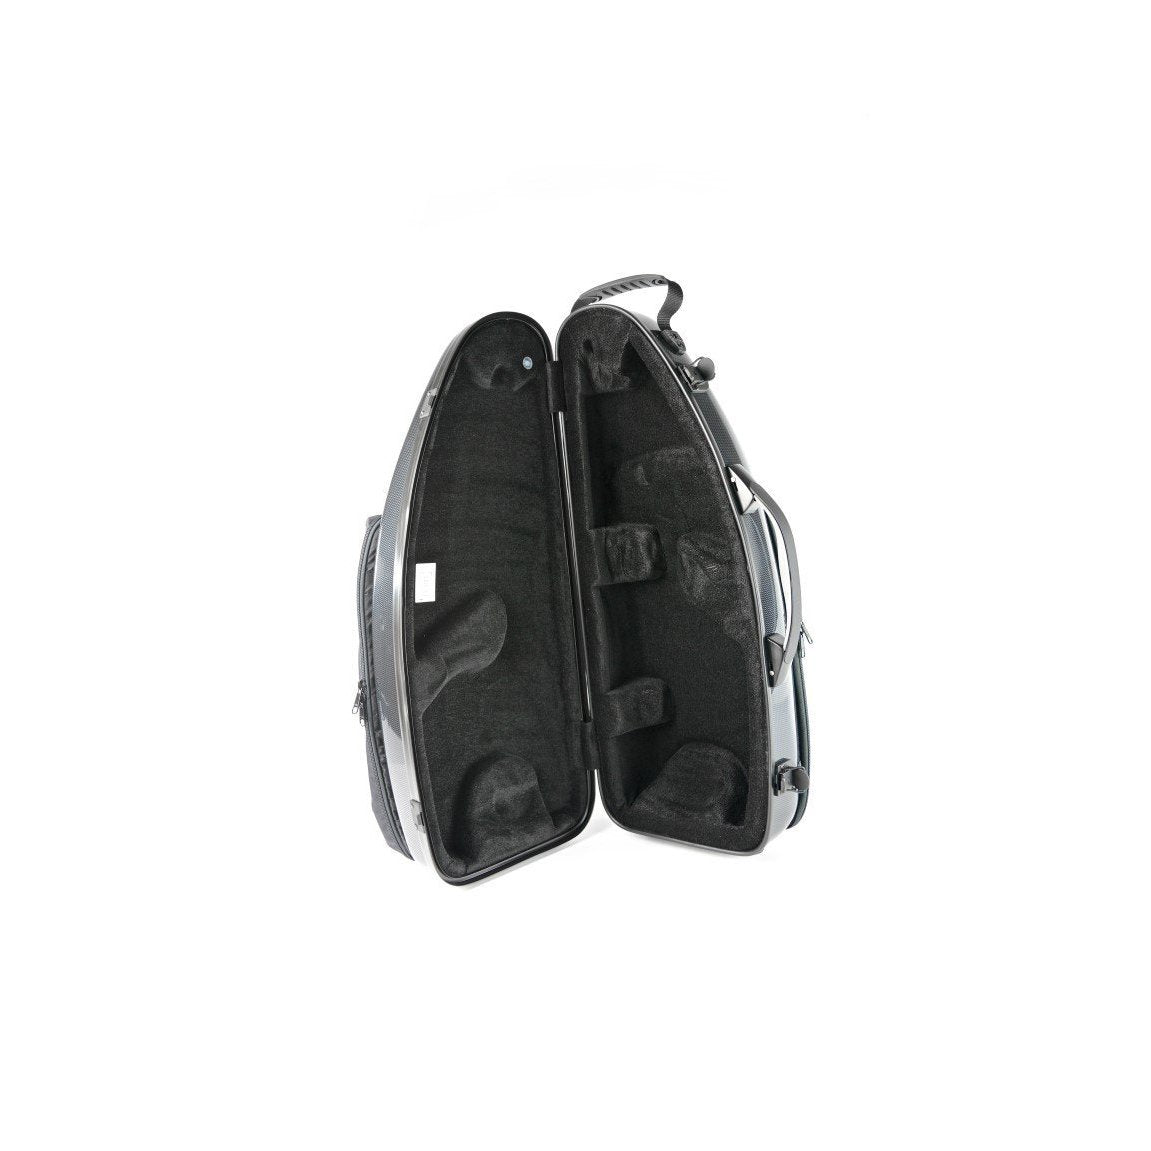 Bam - Hightech Alto Saxophone Cases (with Pocket)-Case-Bam-Music Elements